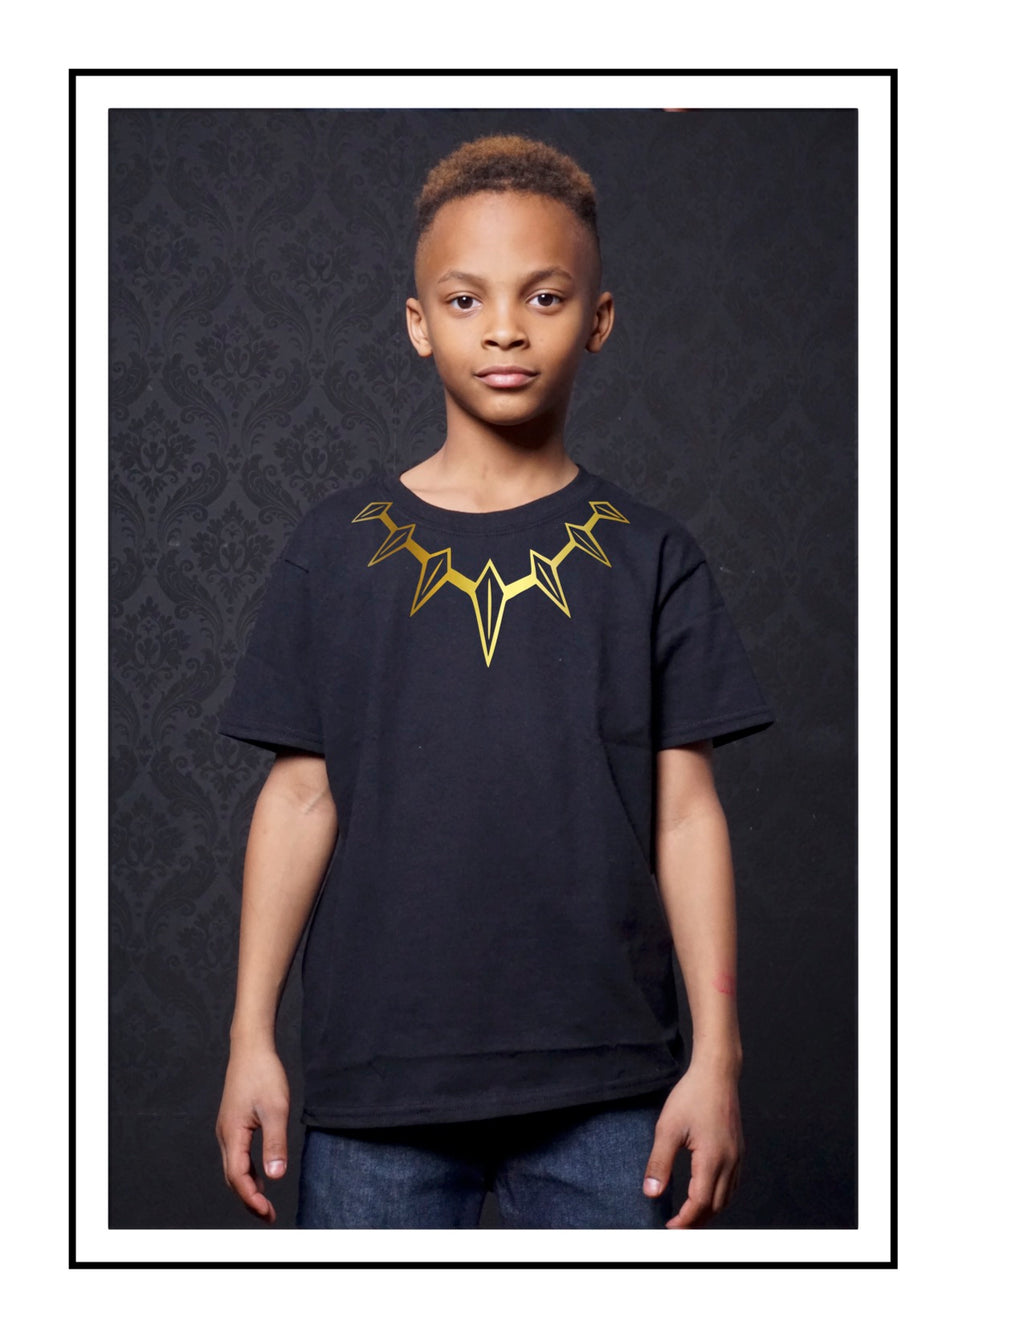 Black Panther Necklace Unisex Tees